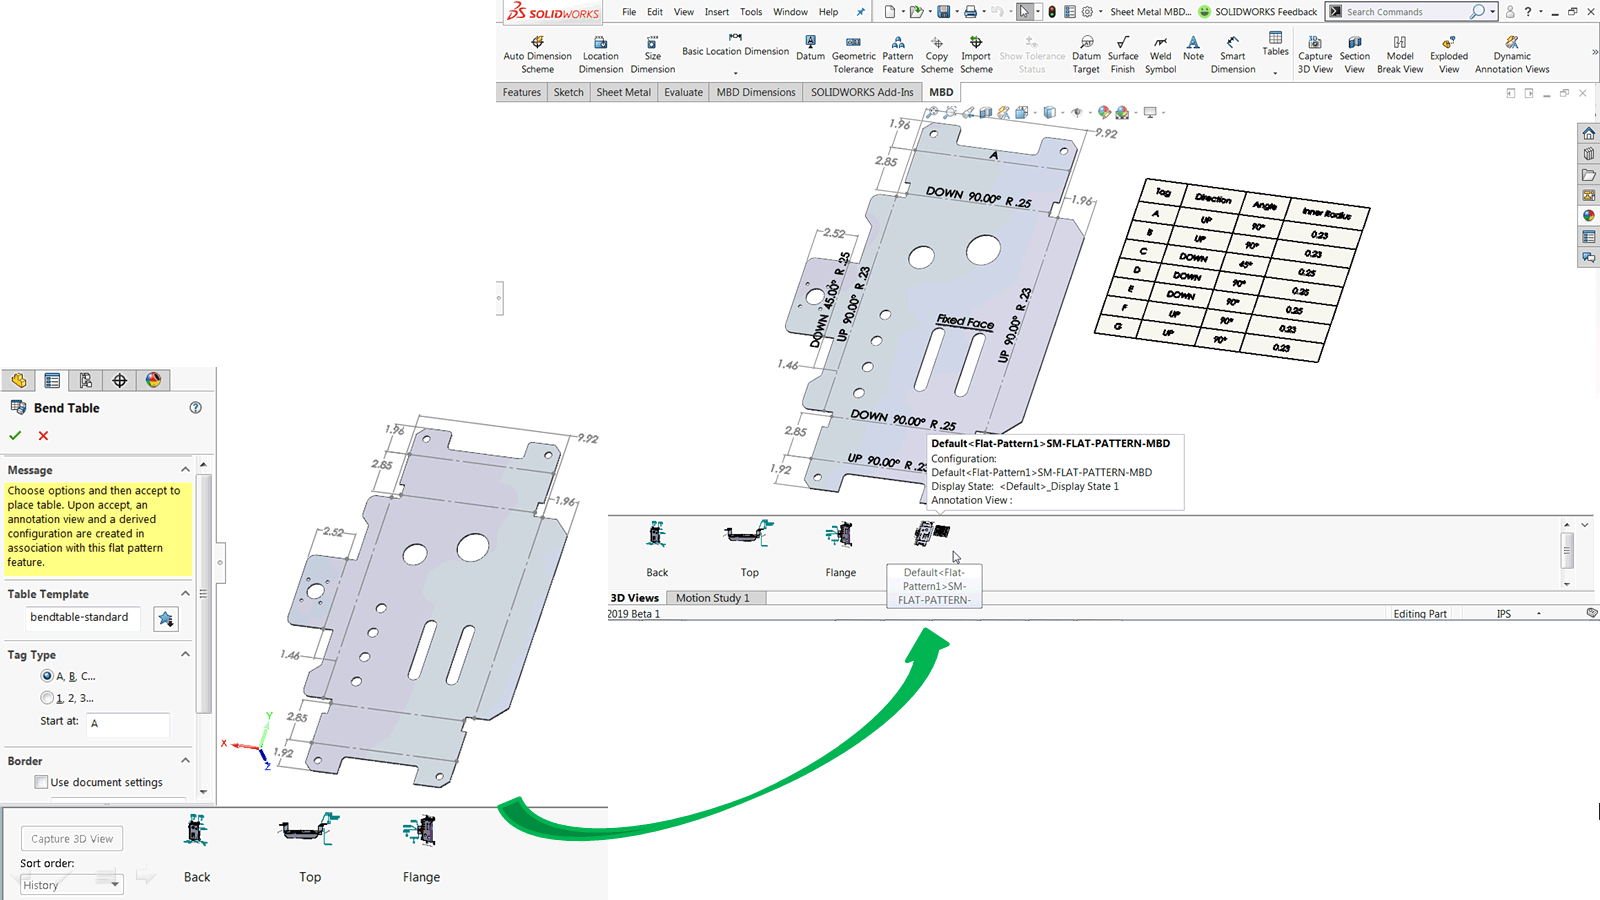 hight resolution of figure 1 automatic bend tables bend notes and flattened 3d view supported in solidworks mbd 2019